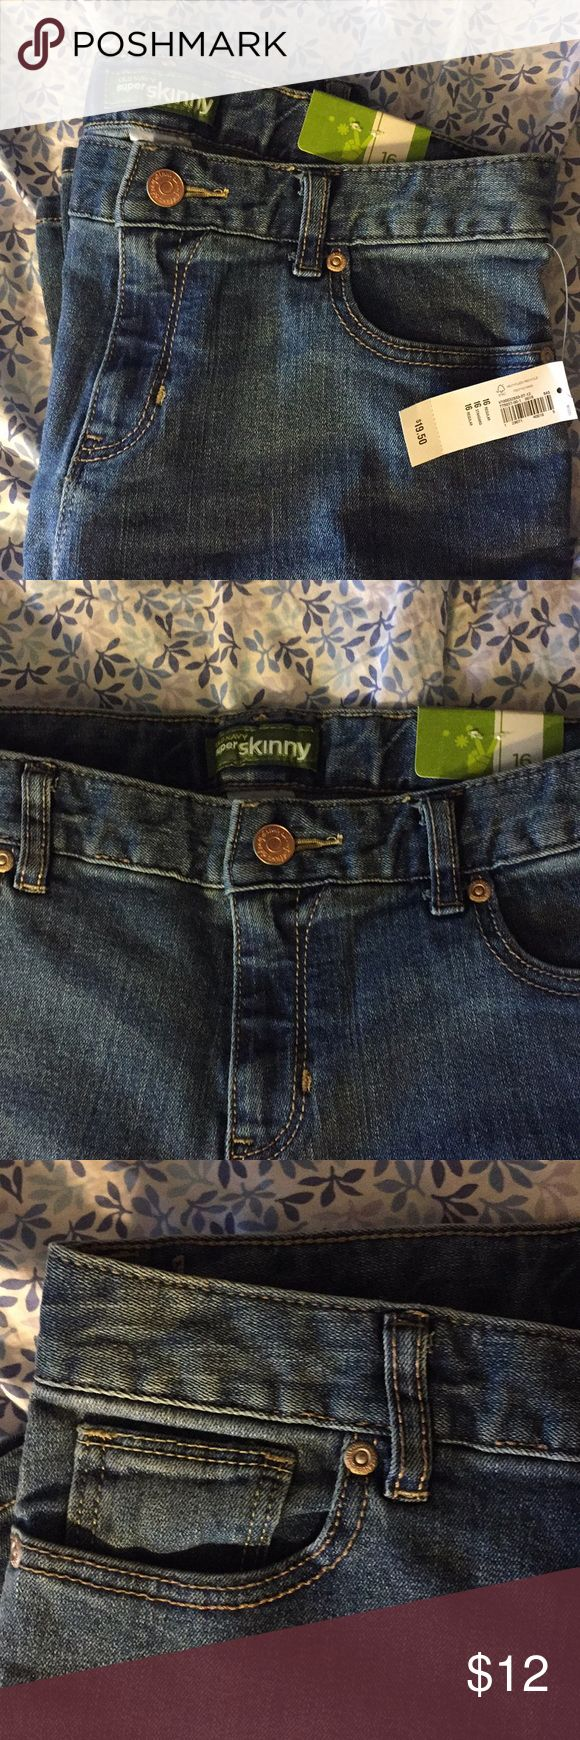 ON Girls Skinny Jeans Helping my sister clean out her closet! NWT skinny jeans. More of a medium to light wash. Old Navy Bottoms Jeans